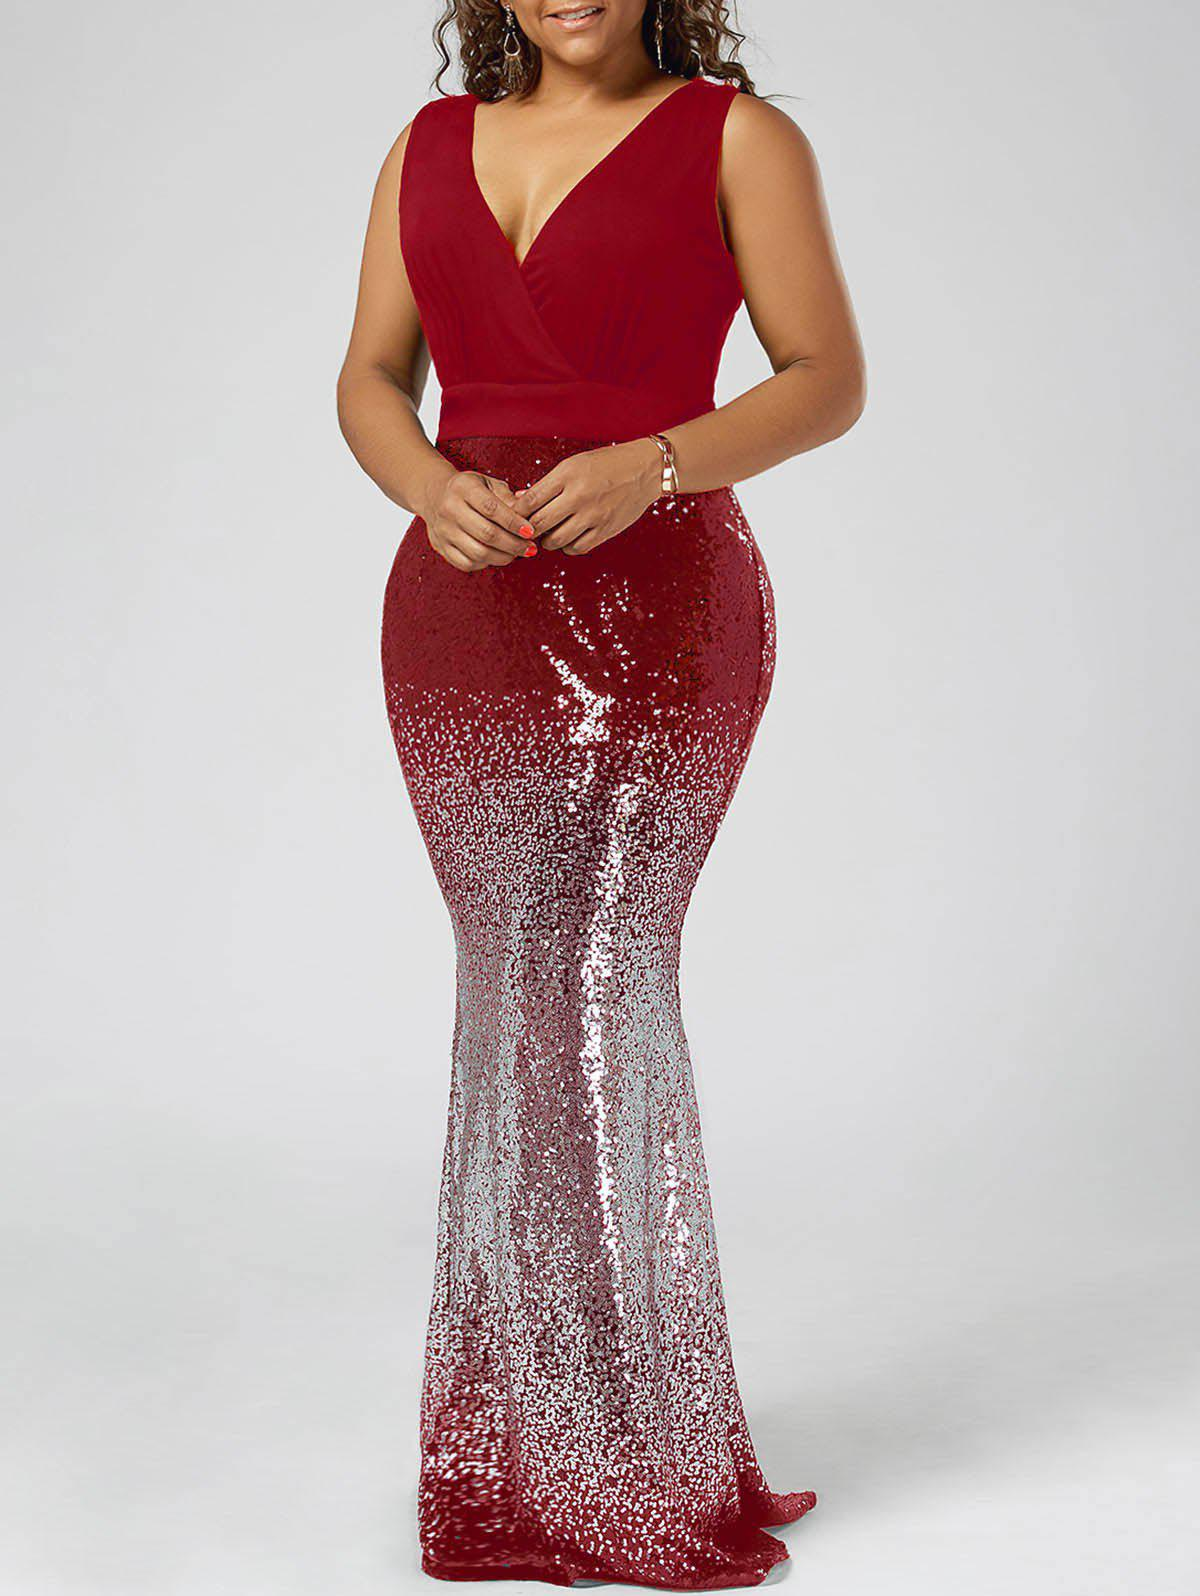 Plus Size Sequins Fishtail Maxi Evening Prom DressWOMEN<br><br>Size: 4XL; Color: RED; Style: Brief; Material: Cotton,Spandex; Silhouette: Trumpet/Mermaid; Dresses Length: Floor-Length; Neckline: V-Neck; Sleeve Length: Sleeveless; Embellishment: Sequins; Pattern Type: Solid; With Belt: No; Season: Summer; Weight: 0.6500kg; Package Contents: 1 x Dress;